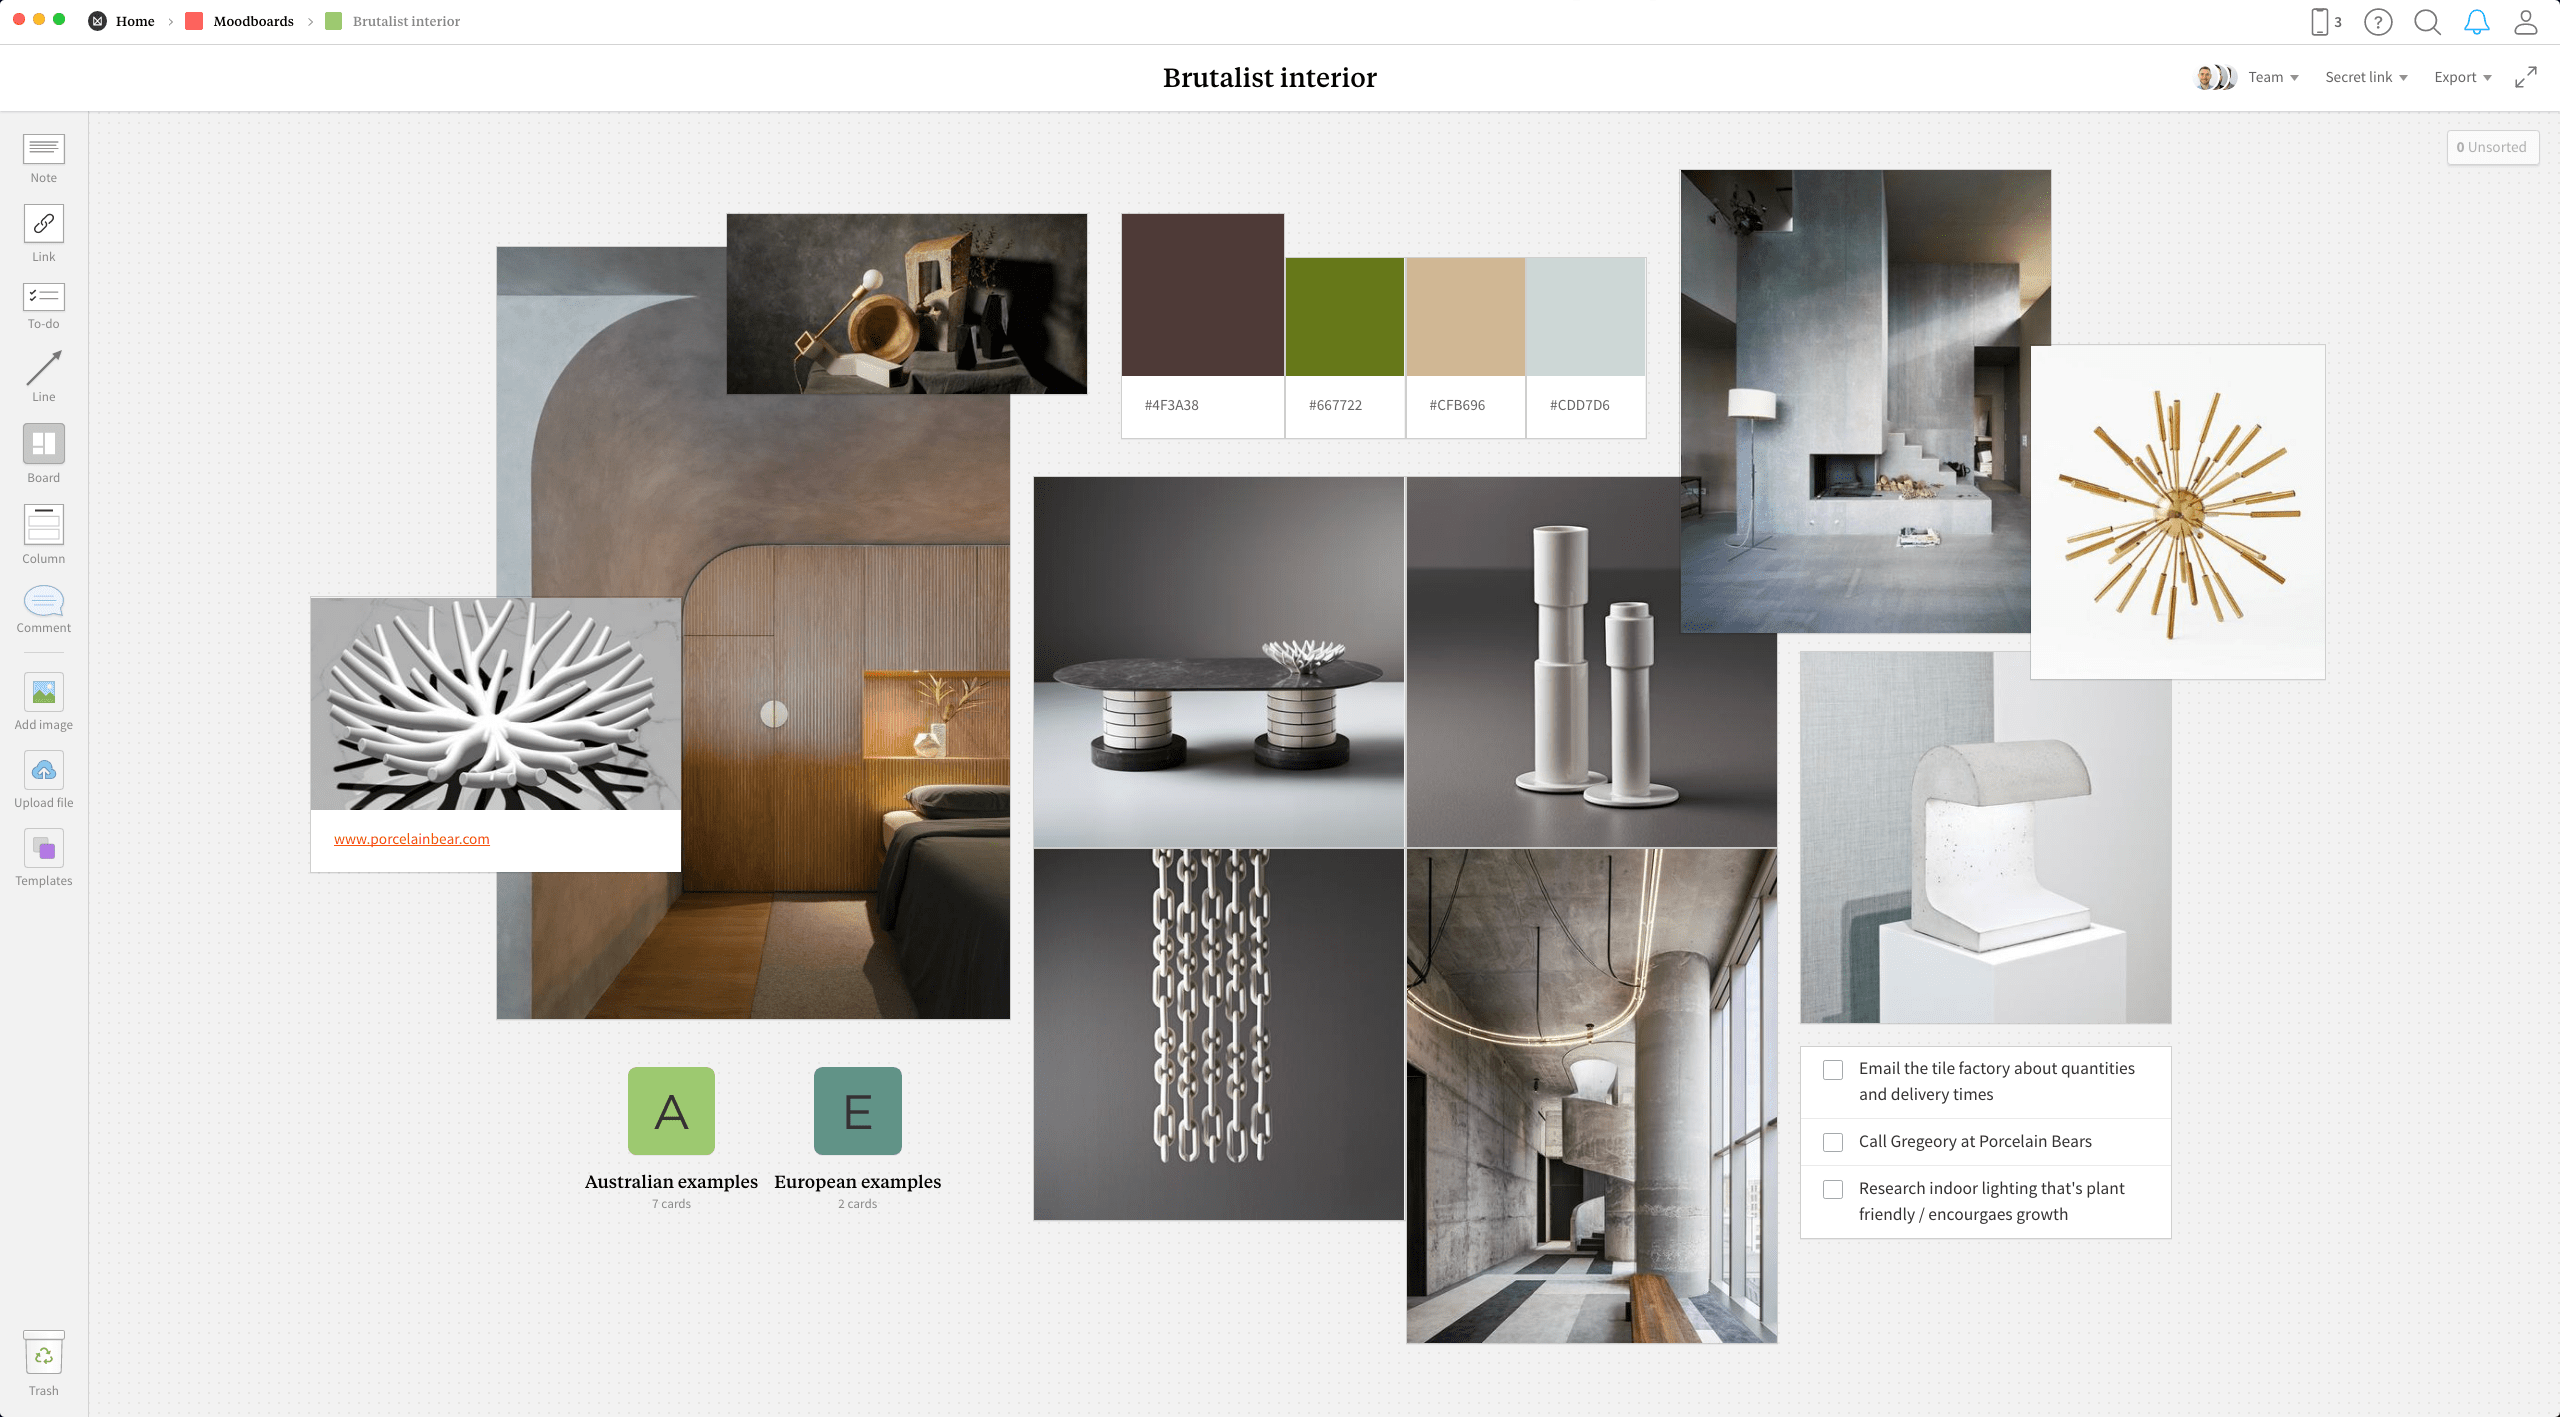 Completed Interior Design Moodboard template in Milanote app